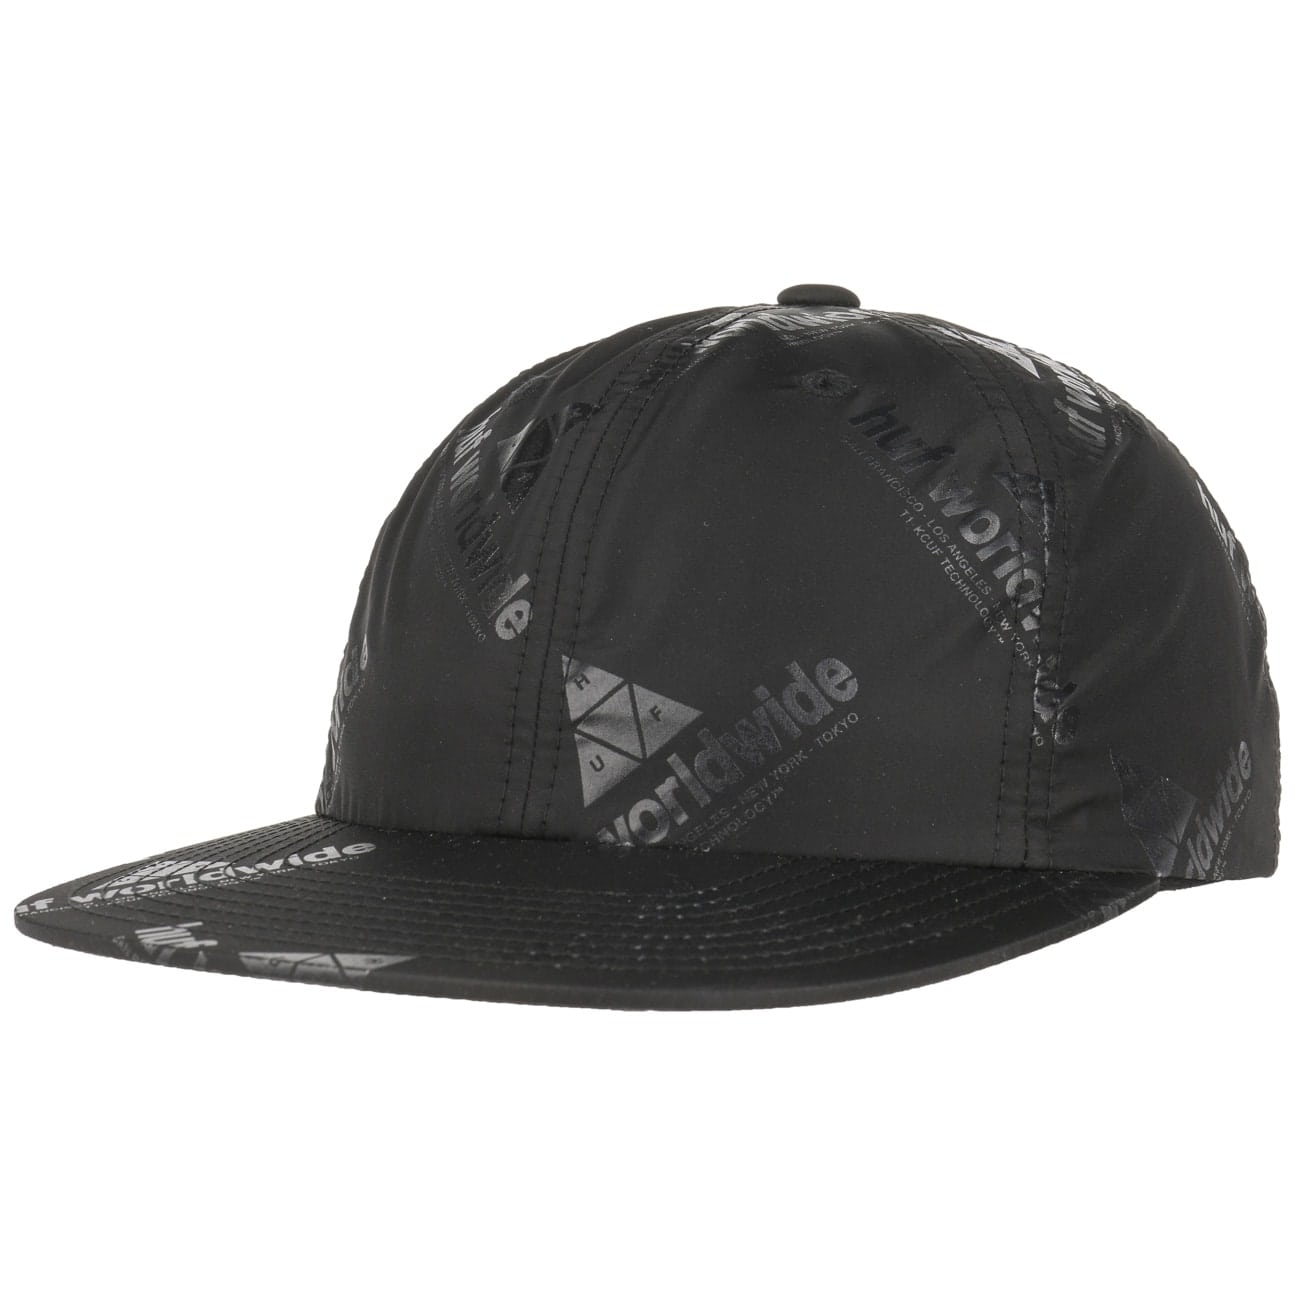 Gorra 6 Panel Peak Strapback by HUF  gorra de baseball